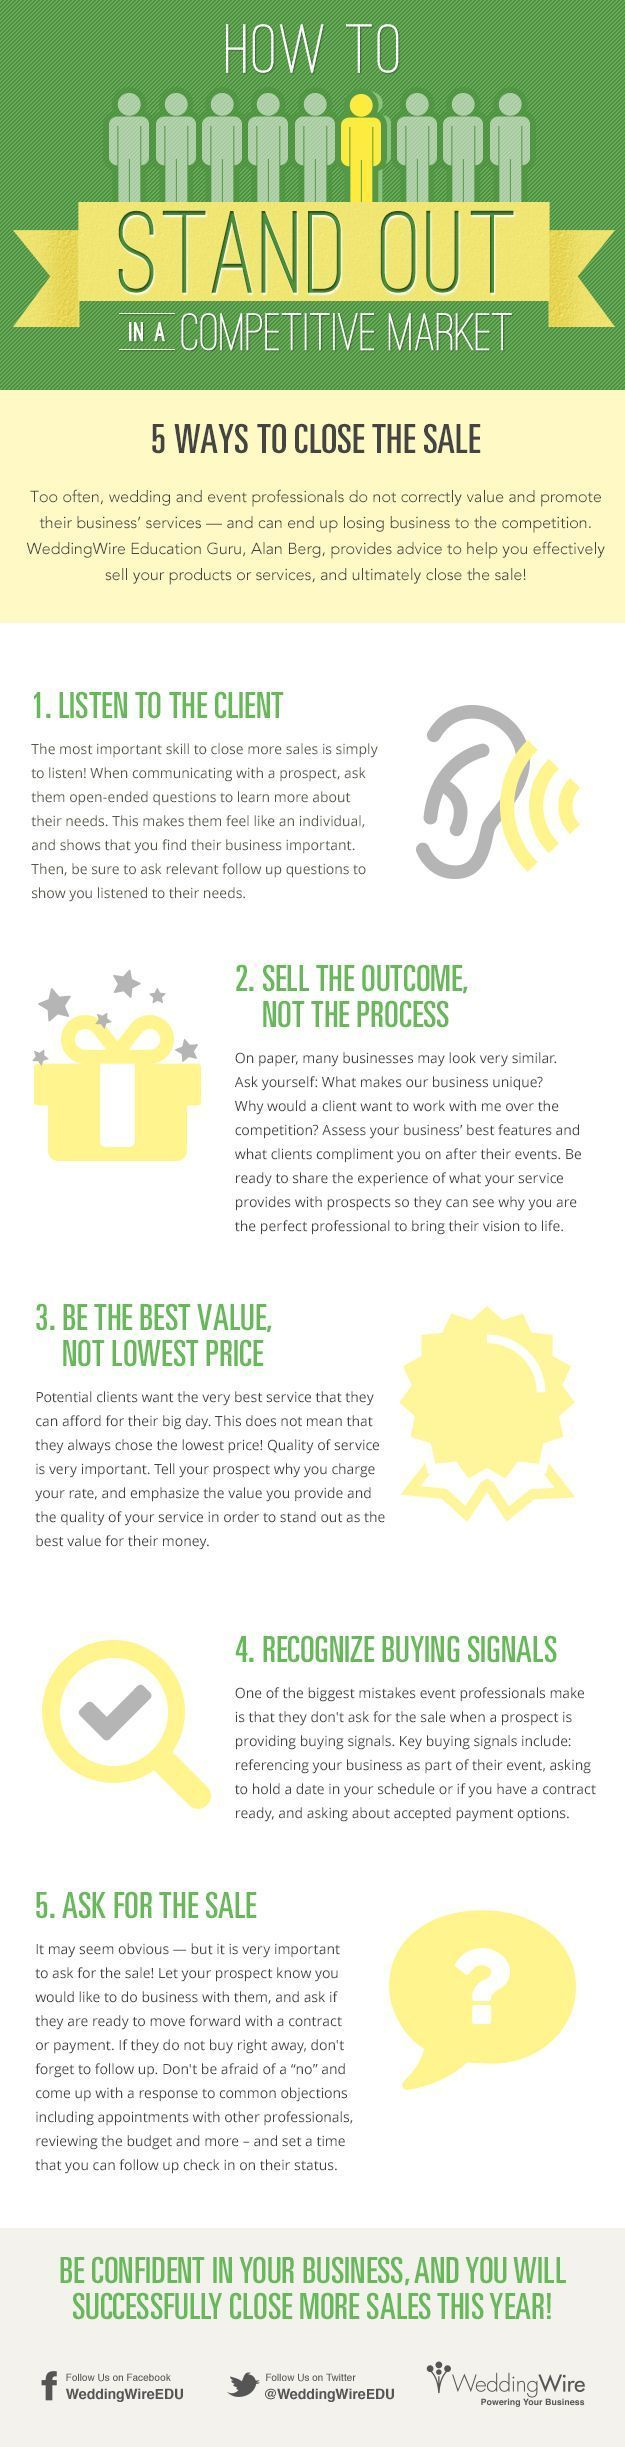 5 Simple Ways To Close The #Sale #infographic